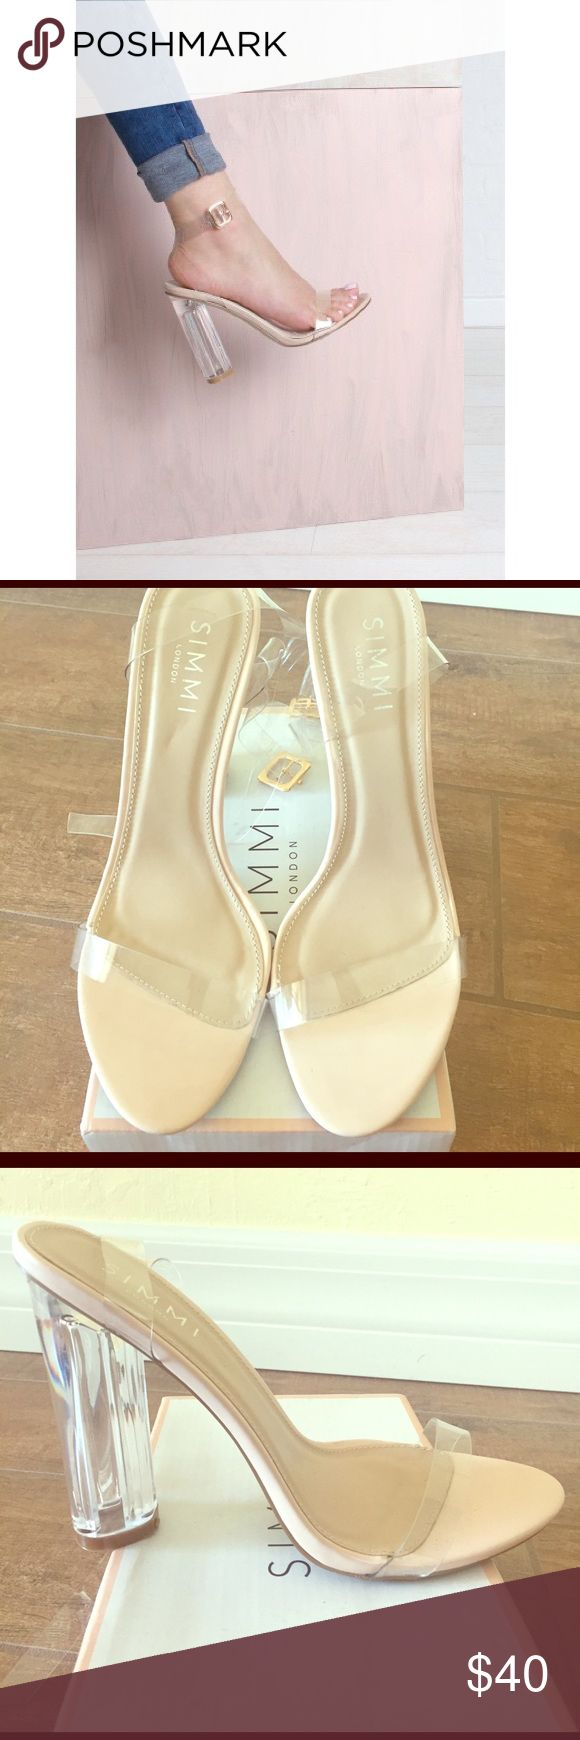 "Nude Perplex Barely There Heels Brand new, never been worn! Very in style nude, clear perplex heels. As seen on Chrissy Teigen, the Kardashian sisters, etc. Great for a night out or for a more ""casual"" look, it can be paired up with boyfriend jeans. Heel measures 4"". Simmi London Shoes Heels"